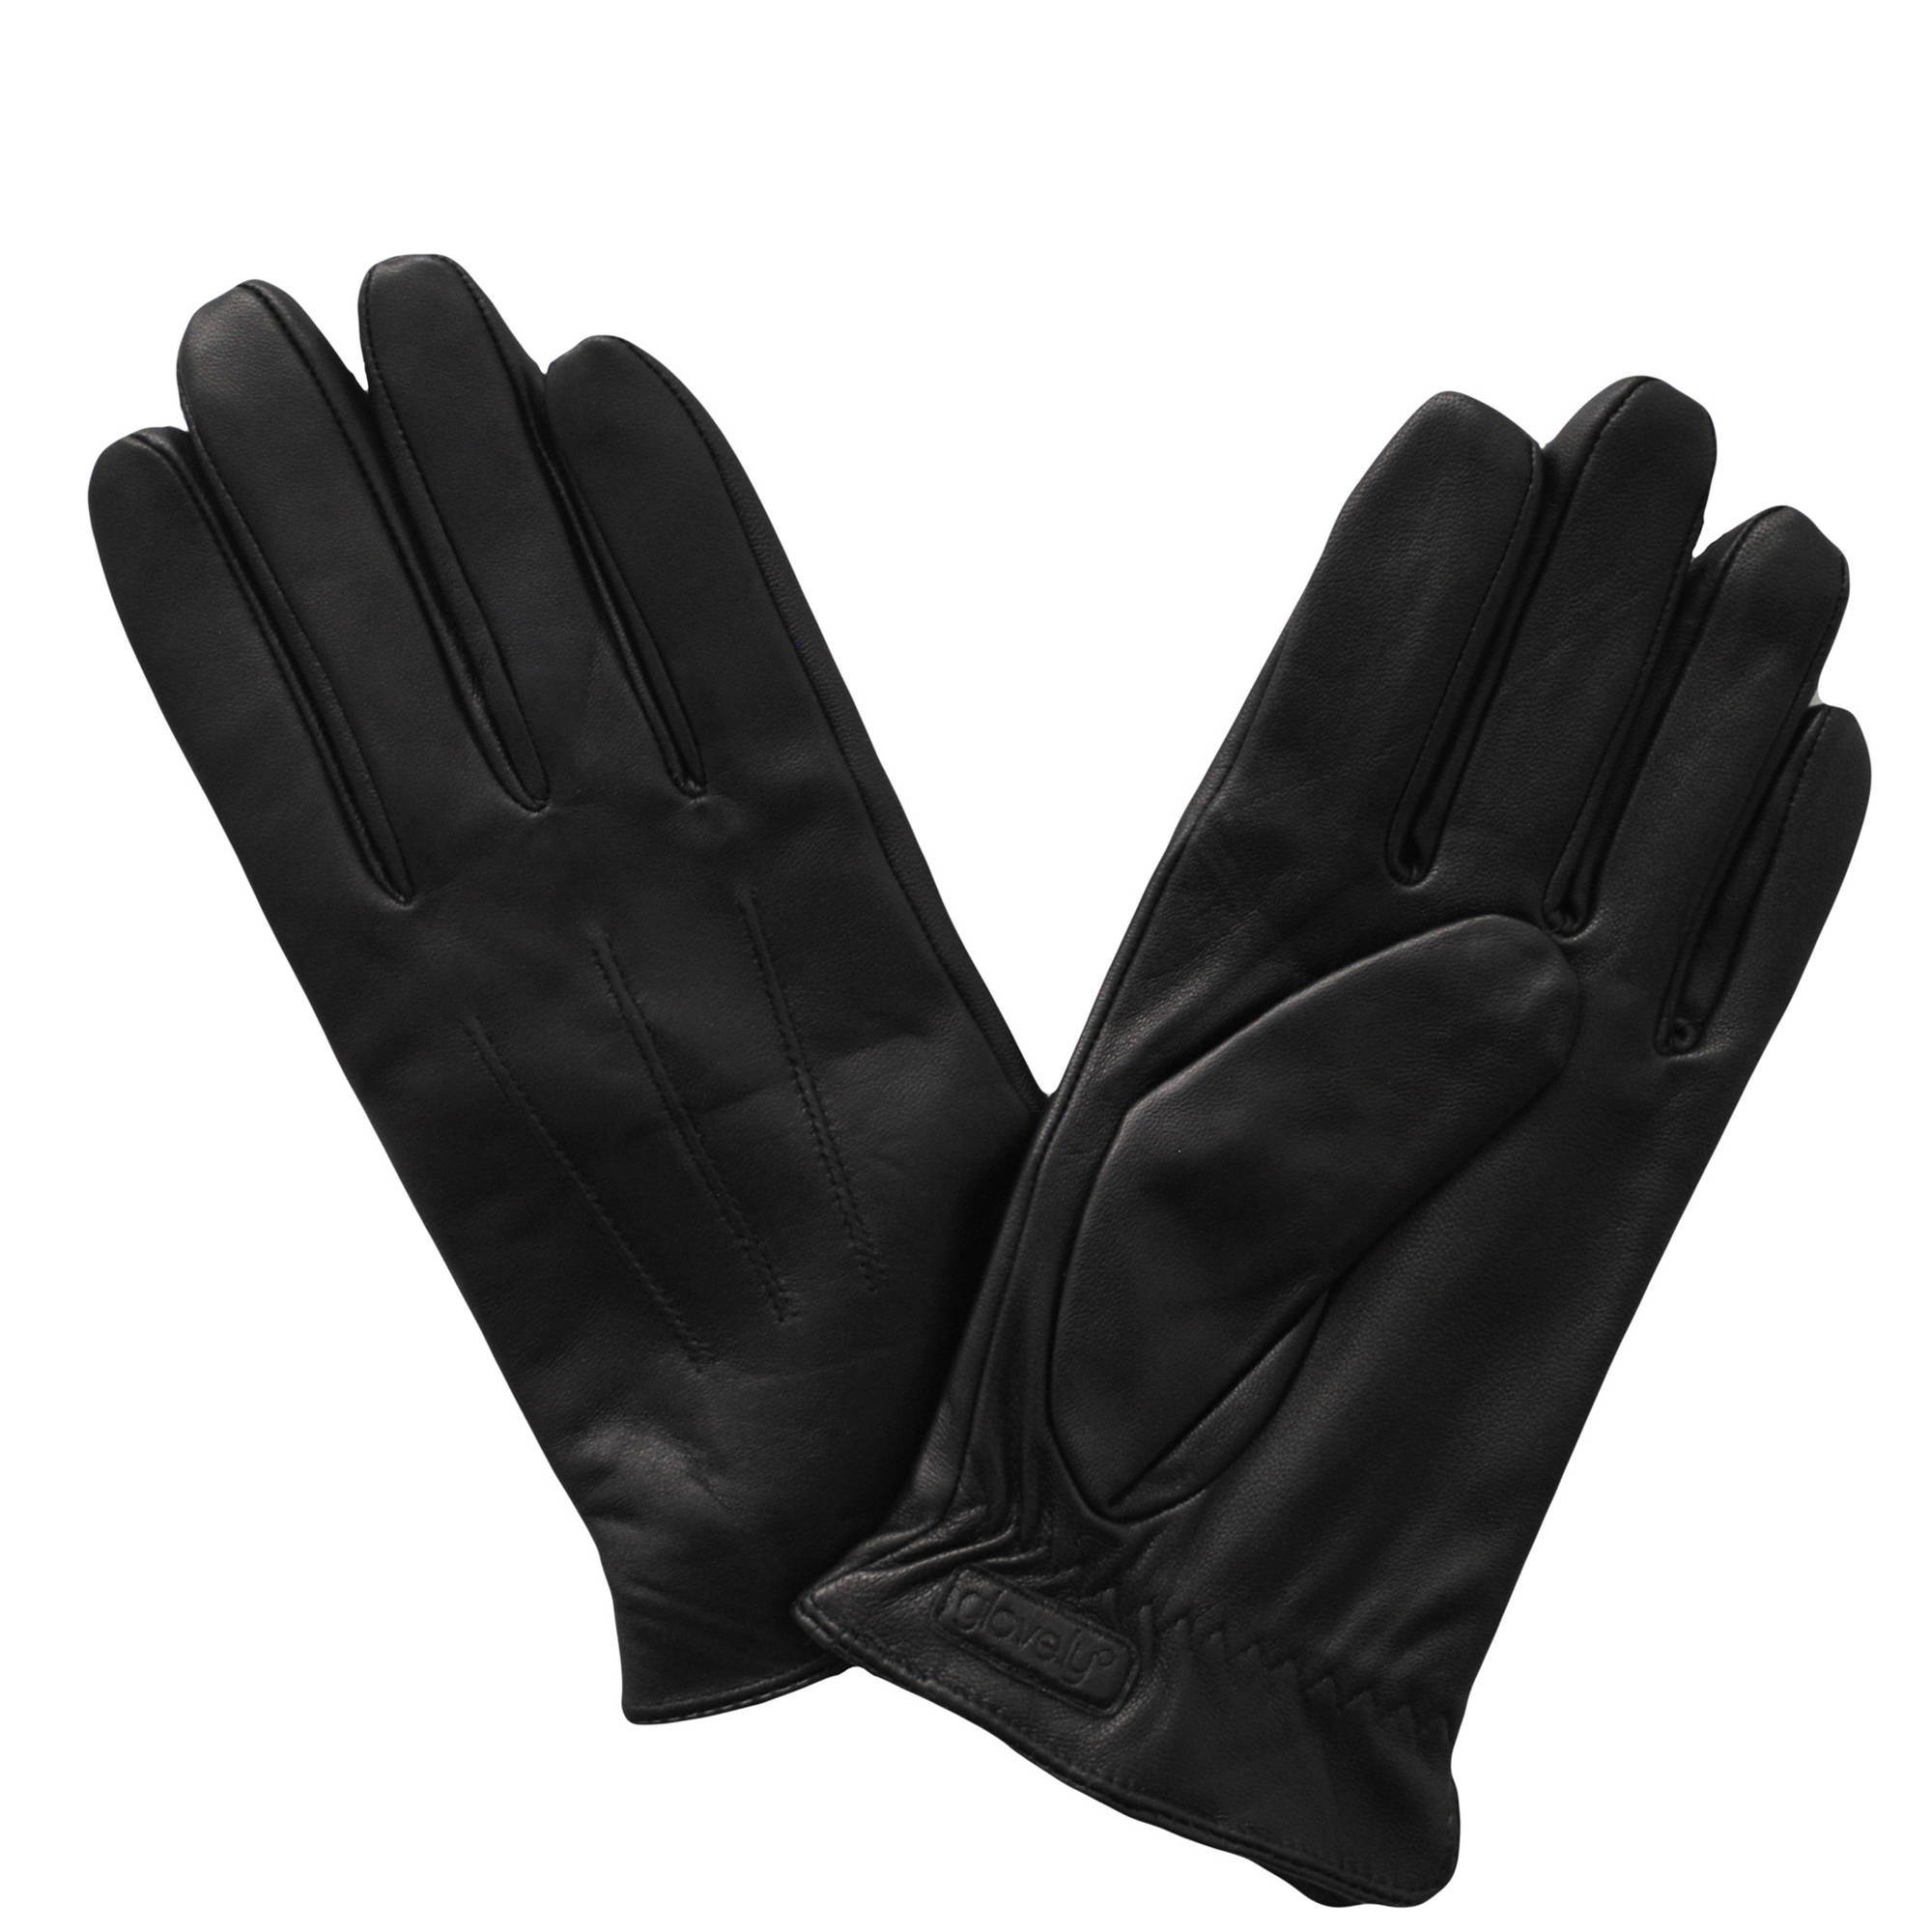 Ladies leather gloves xs - Glove Ly Women S Leather Touchscreen Gloves Black X Small